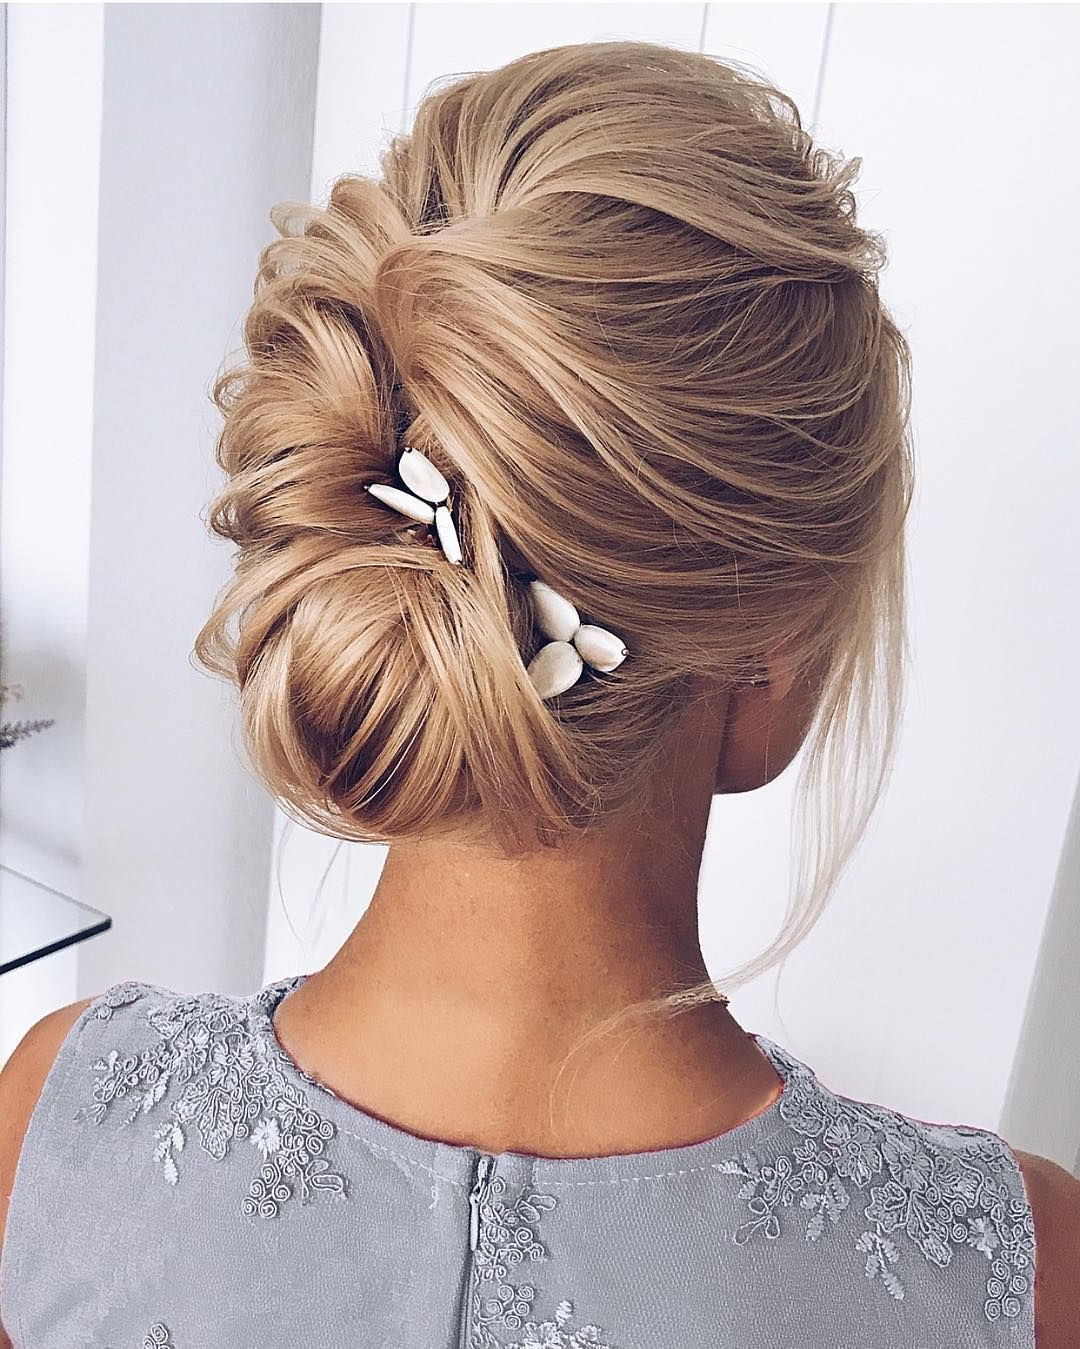 Recent Short Classic Wedding Hairstyles With Modern Twist In Finding Just The Right Wedding Hair For Your Wedding Day Is No Small (View 10 of 20)